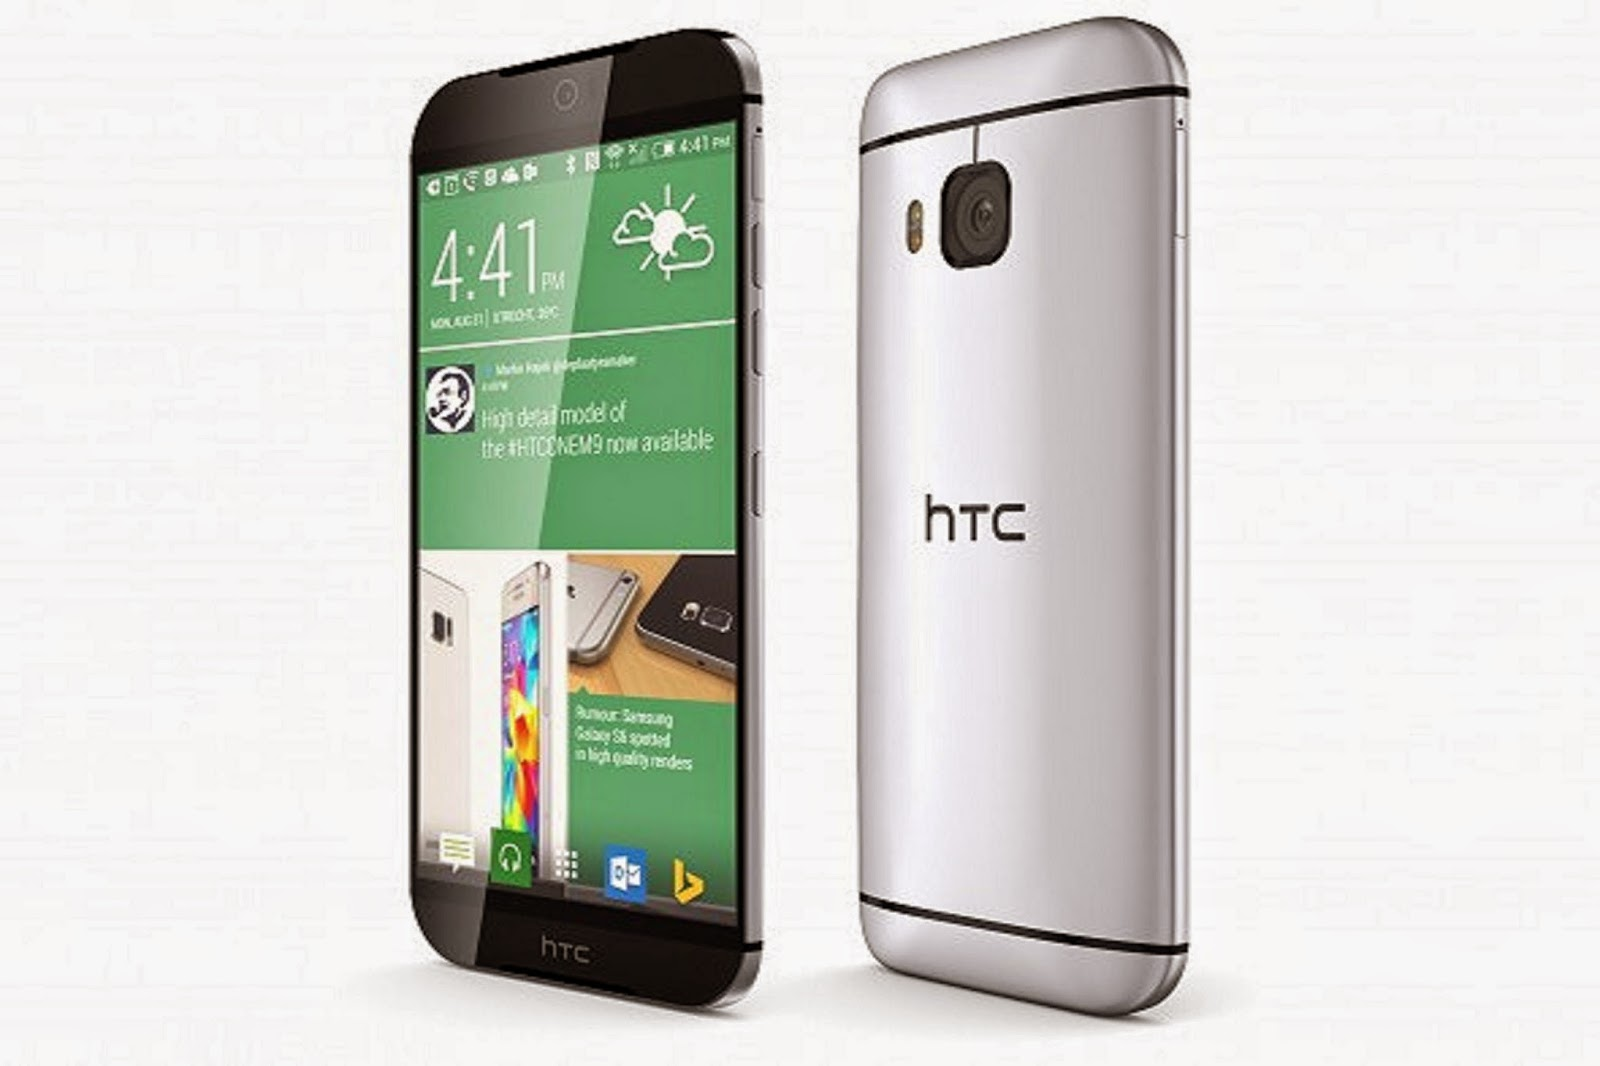 Camera Android Latest Phone the best new upcoming android phonesmartphones 2016 smartphone htc one m9